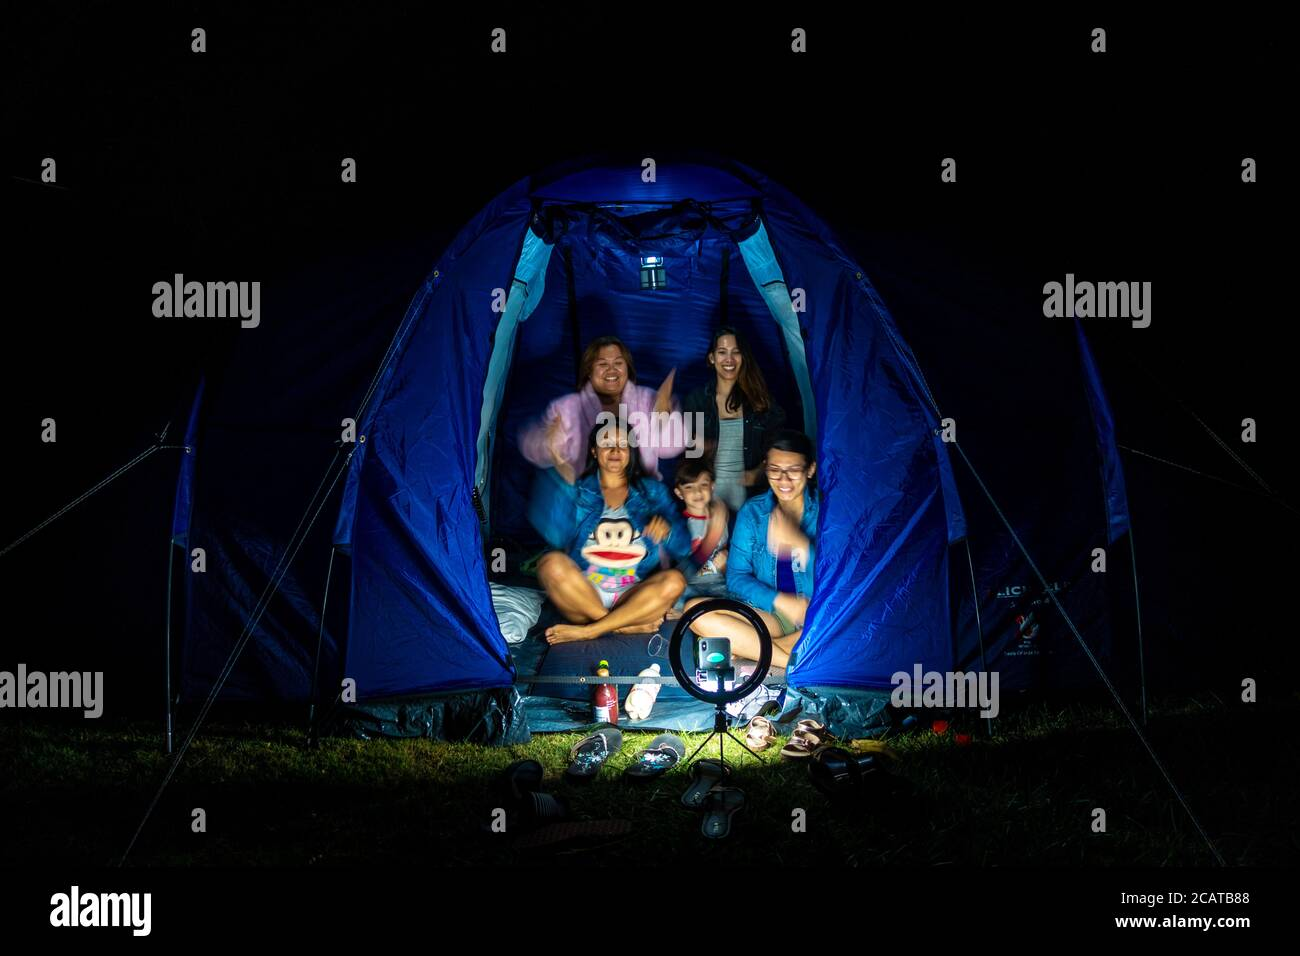 friends-sit-together-in-a-tent-in-the-dark-and-make-a-tik-tok-video-using-a-ring-light-to-hold-a-phone-and-provide-light-2CATB88.jpg